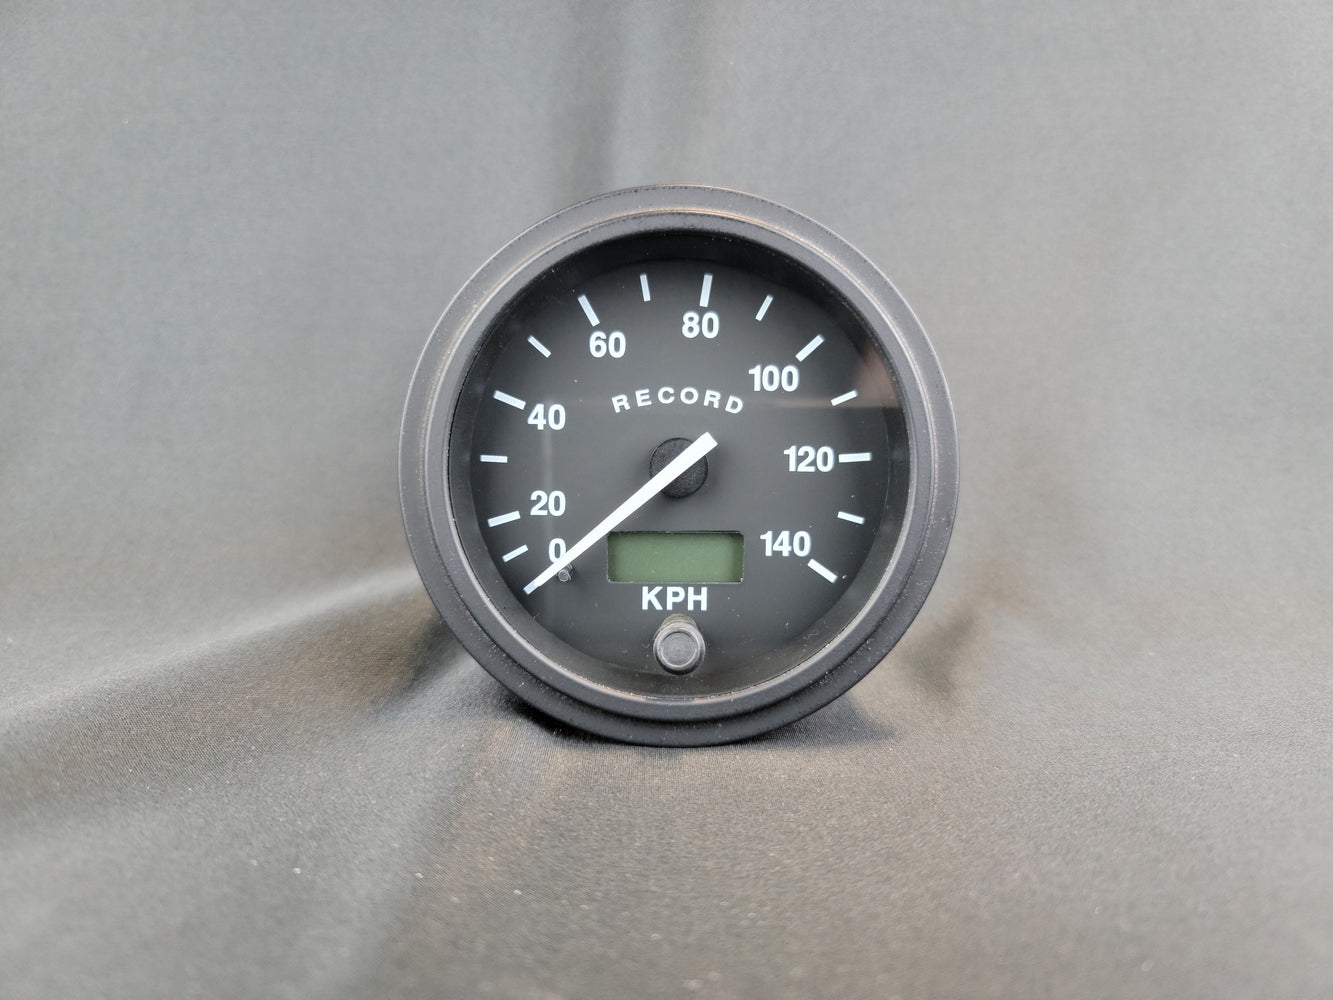 RECORD 3 3/8 Inch Electric Speedometer with Odometer - KPH - R17412/24B